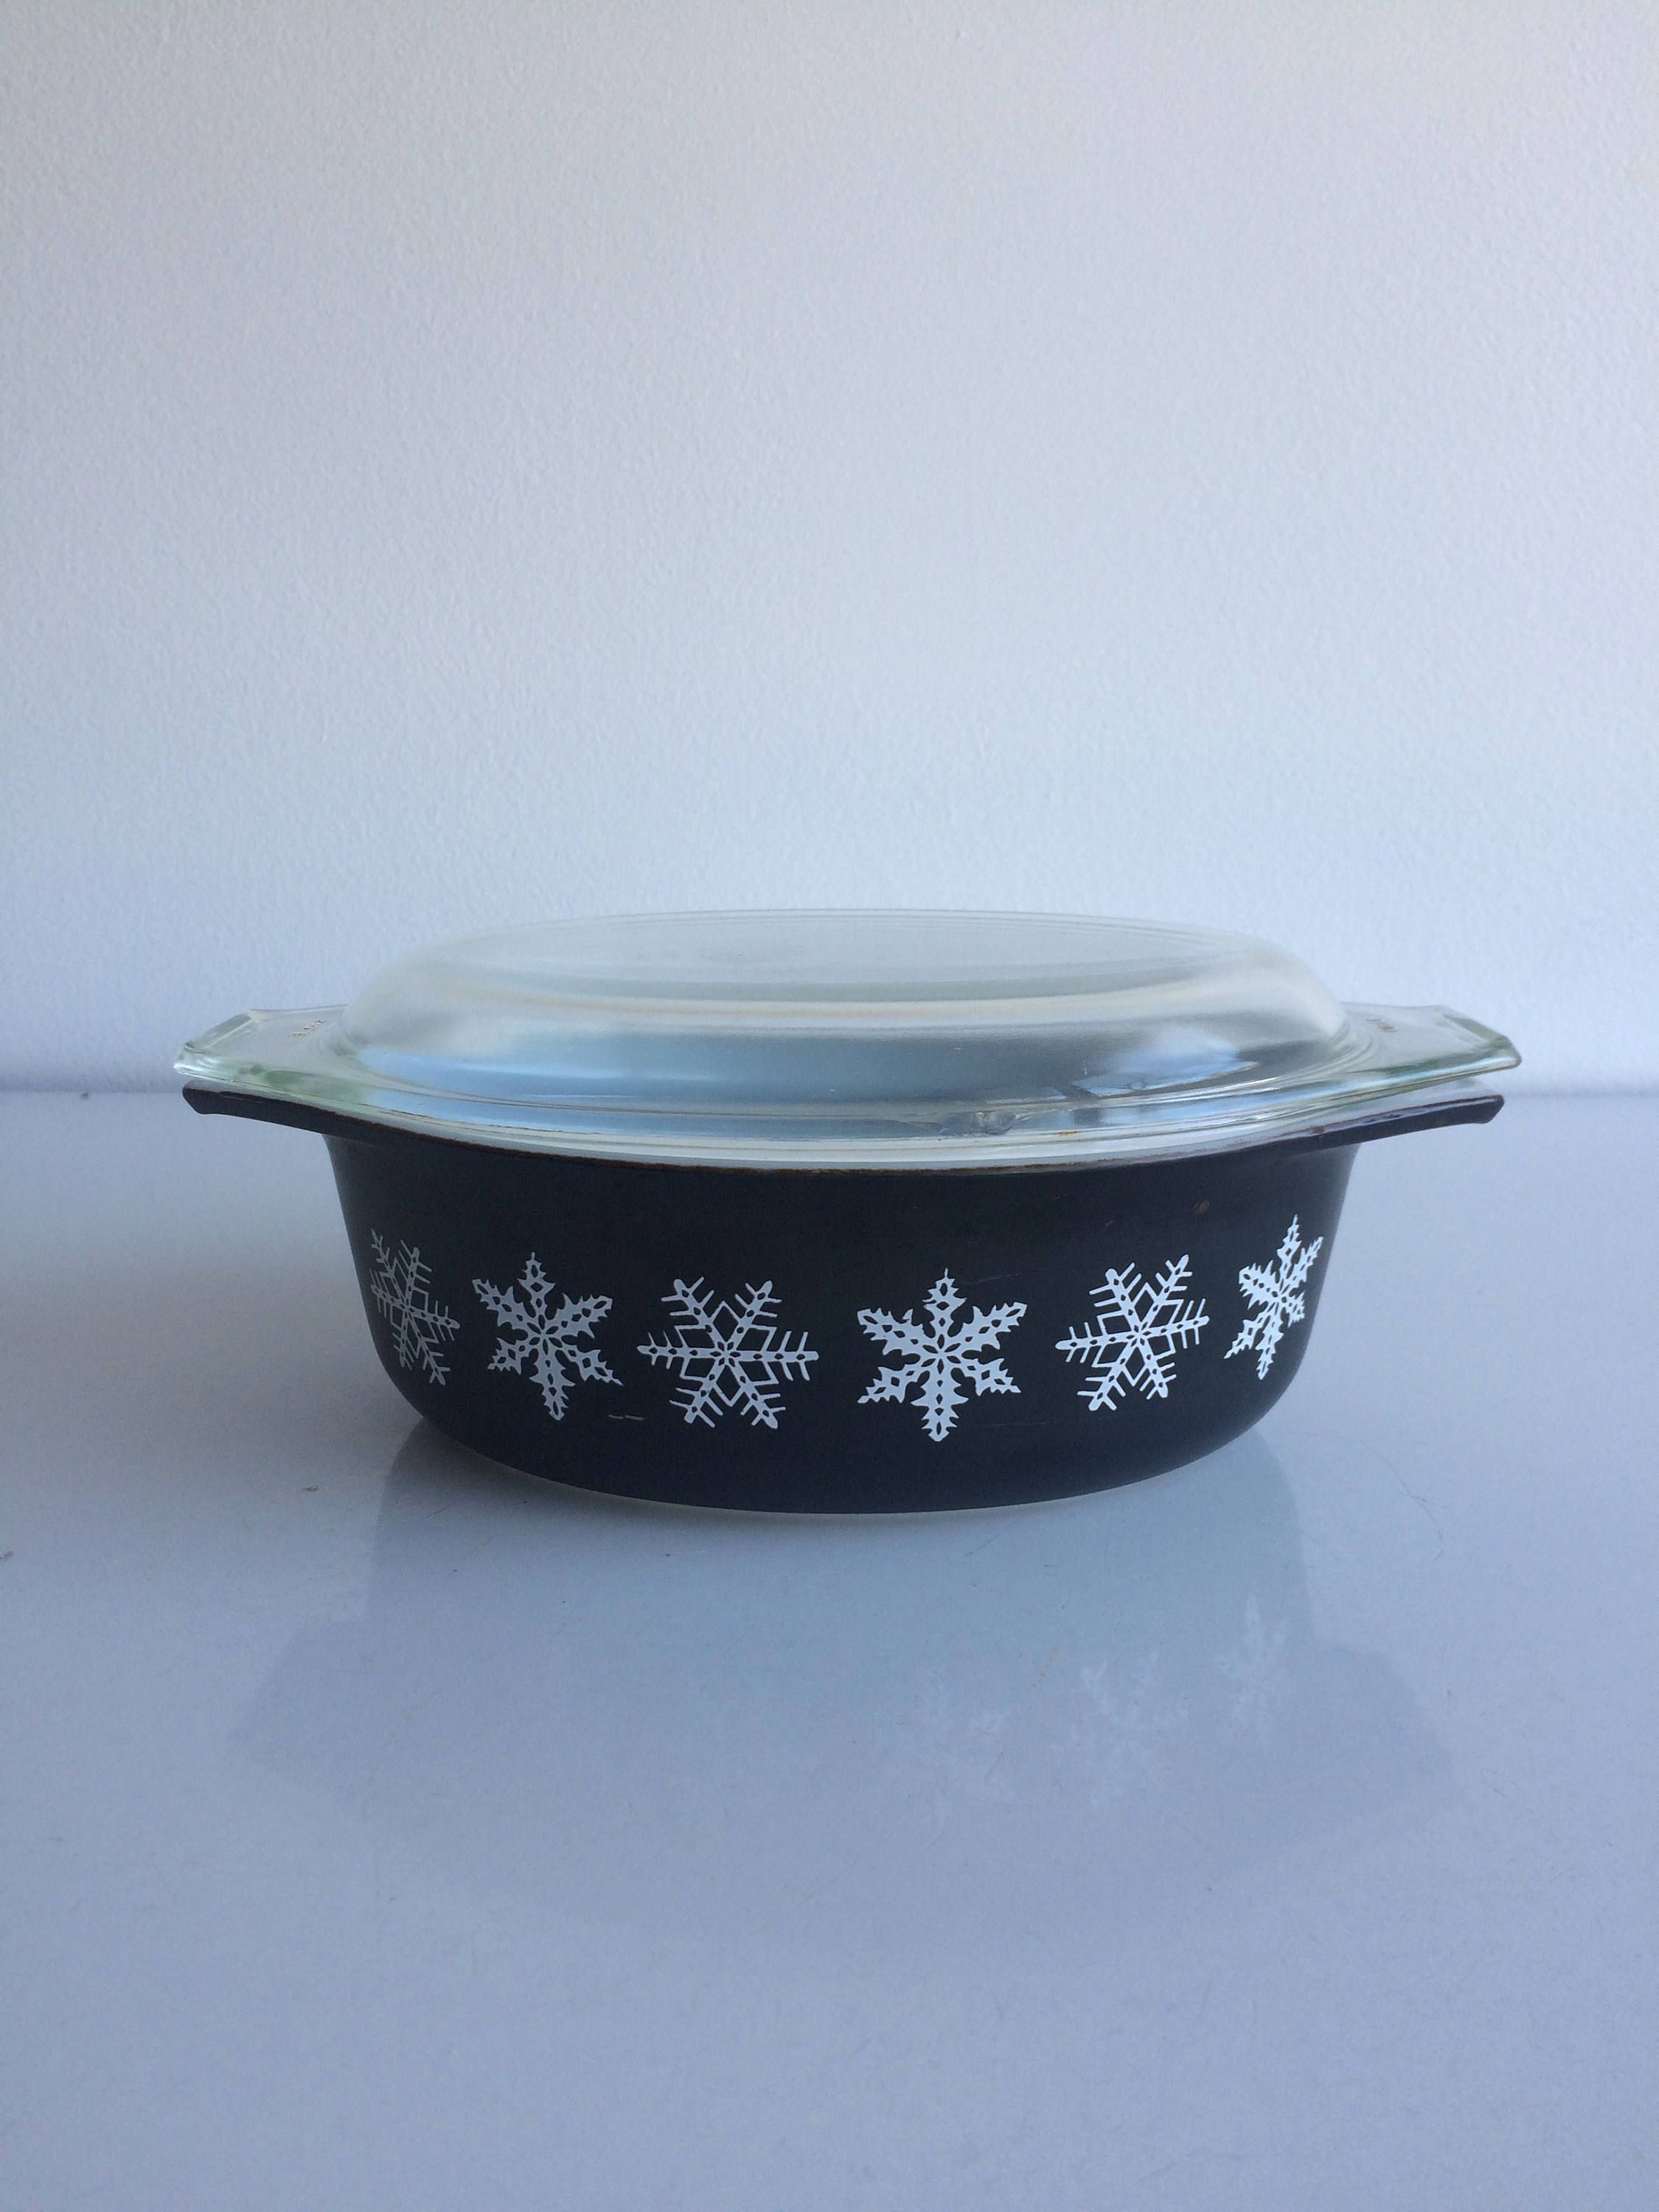 Vintage Pyrex Black & White Snowflake Casserole with Clear Glass Lid ...